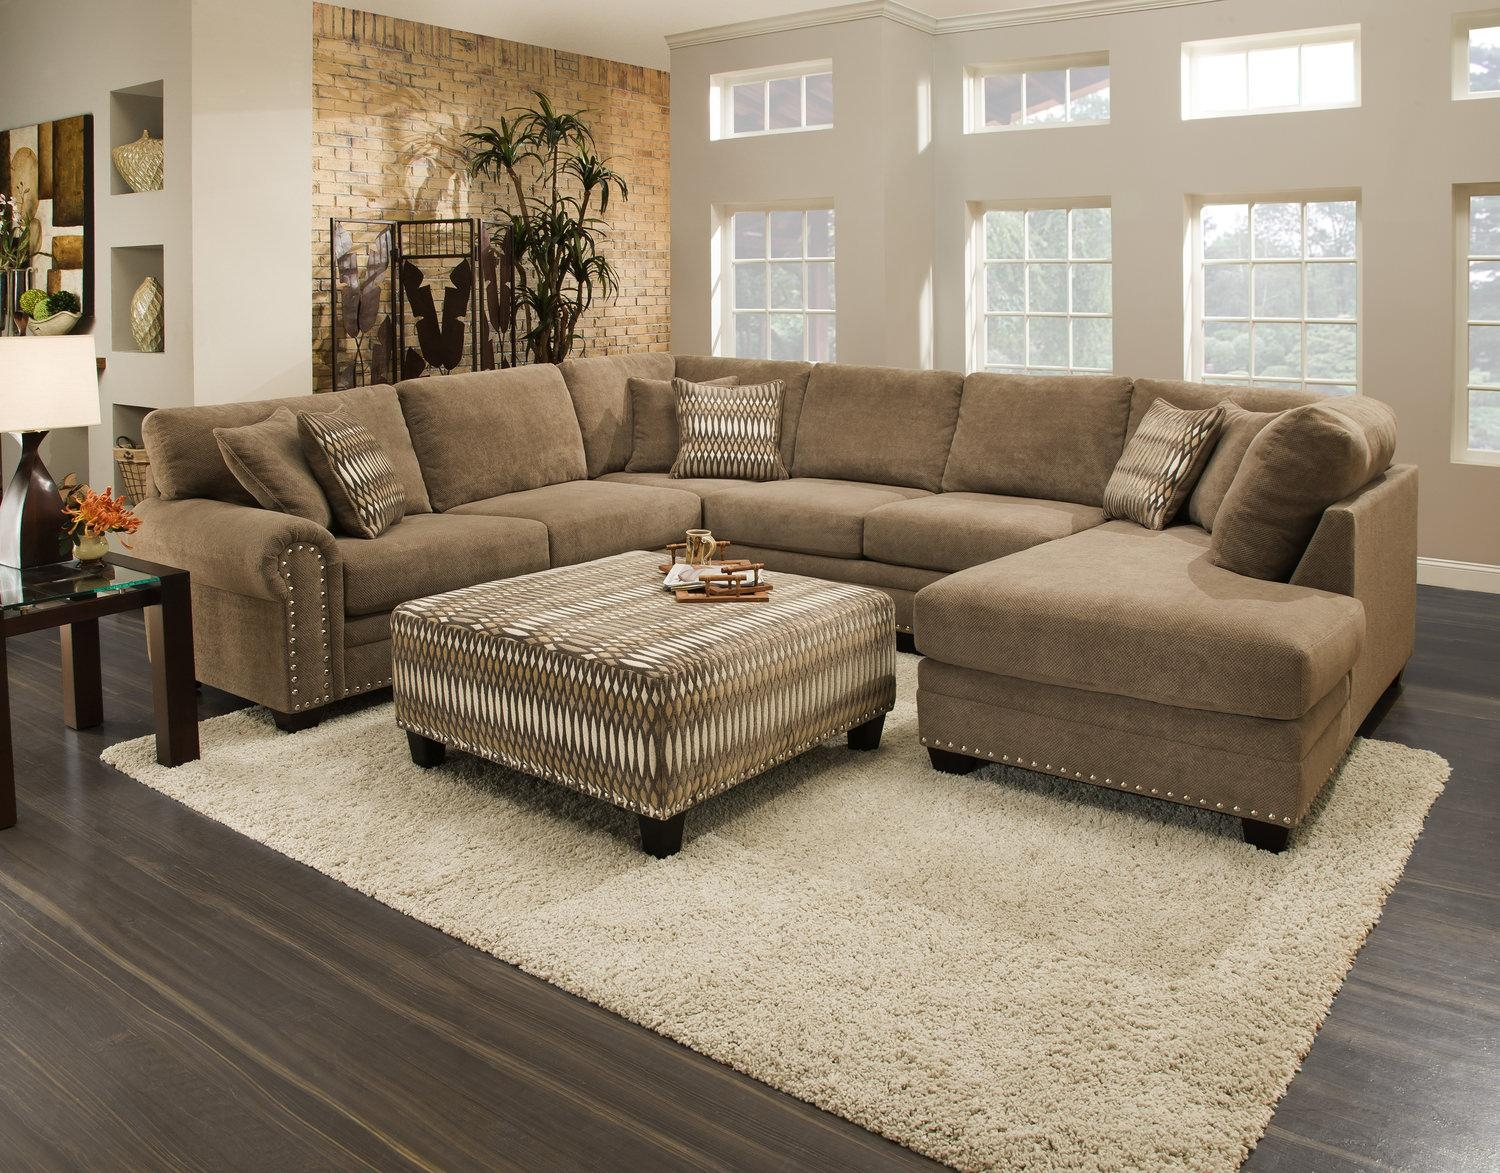 Sectional Sofas – Living Room Seating – Hom Furniture For Angled Chaise Sofa (View 19 of 20)